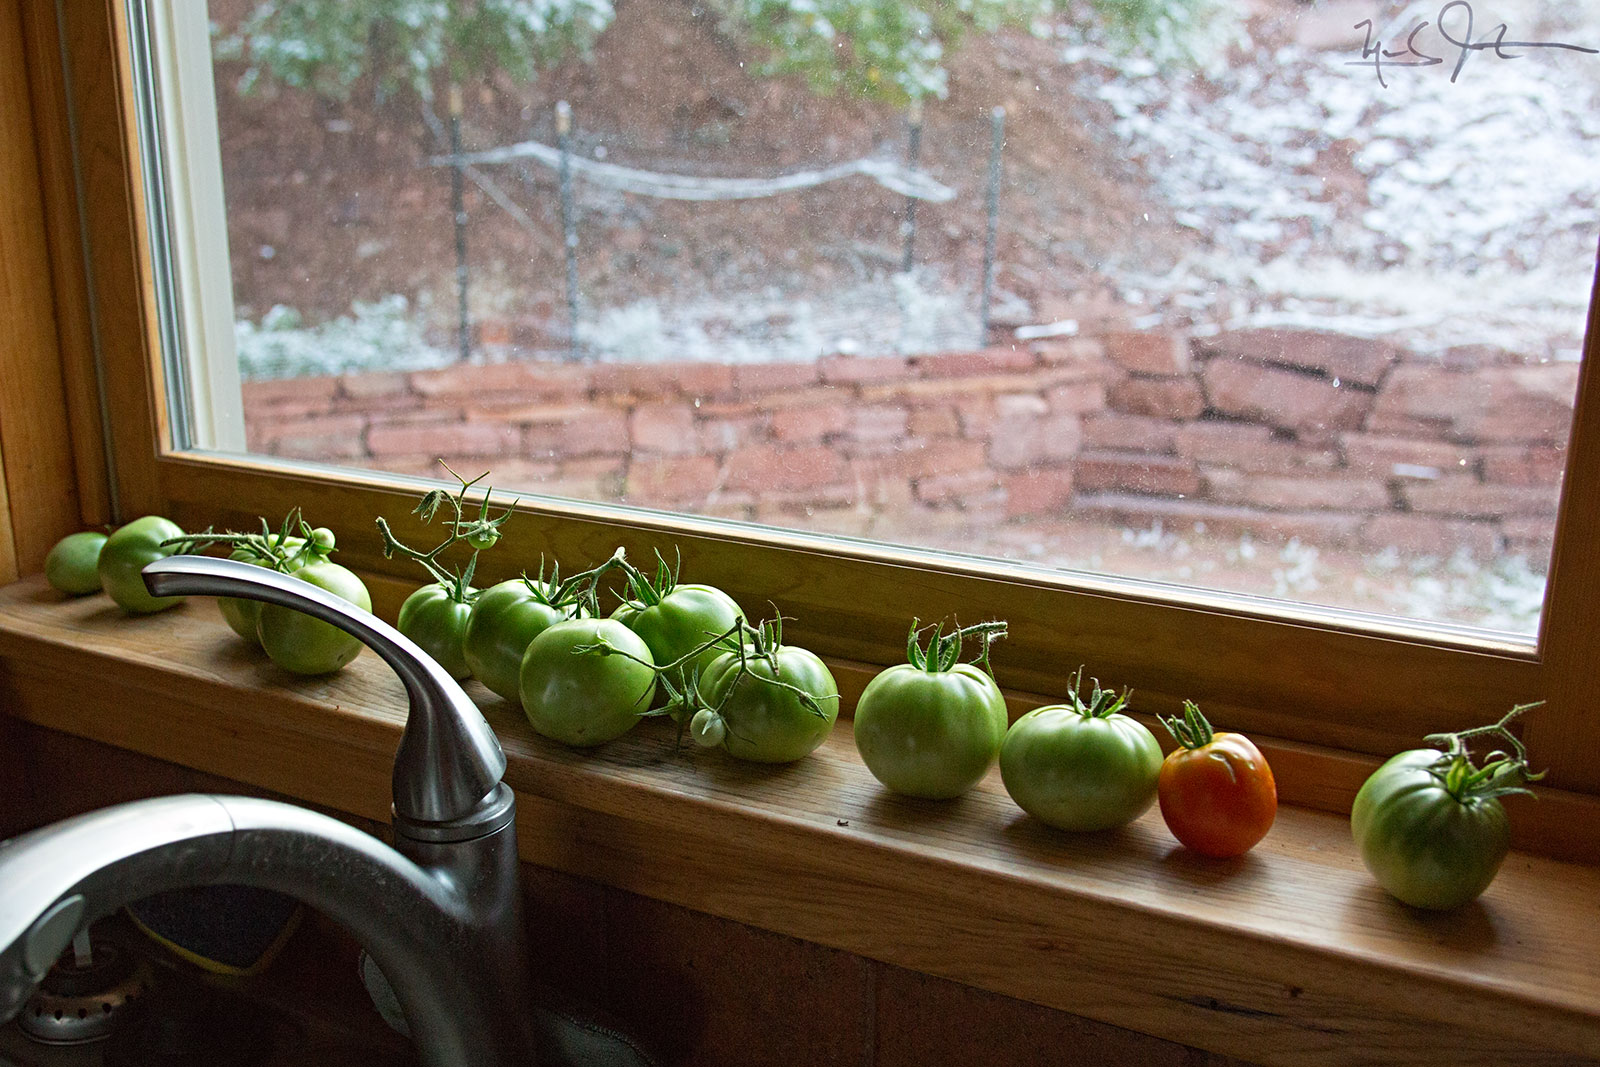 Hopefully, mature enough to ripen on the window sill.